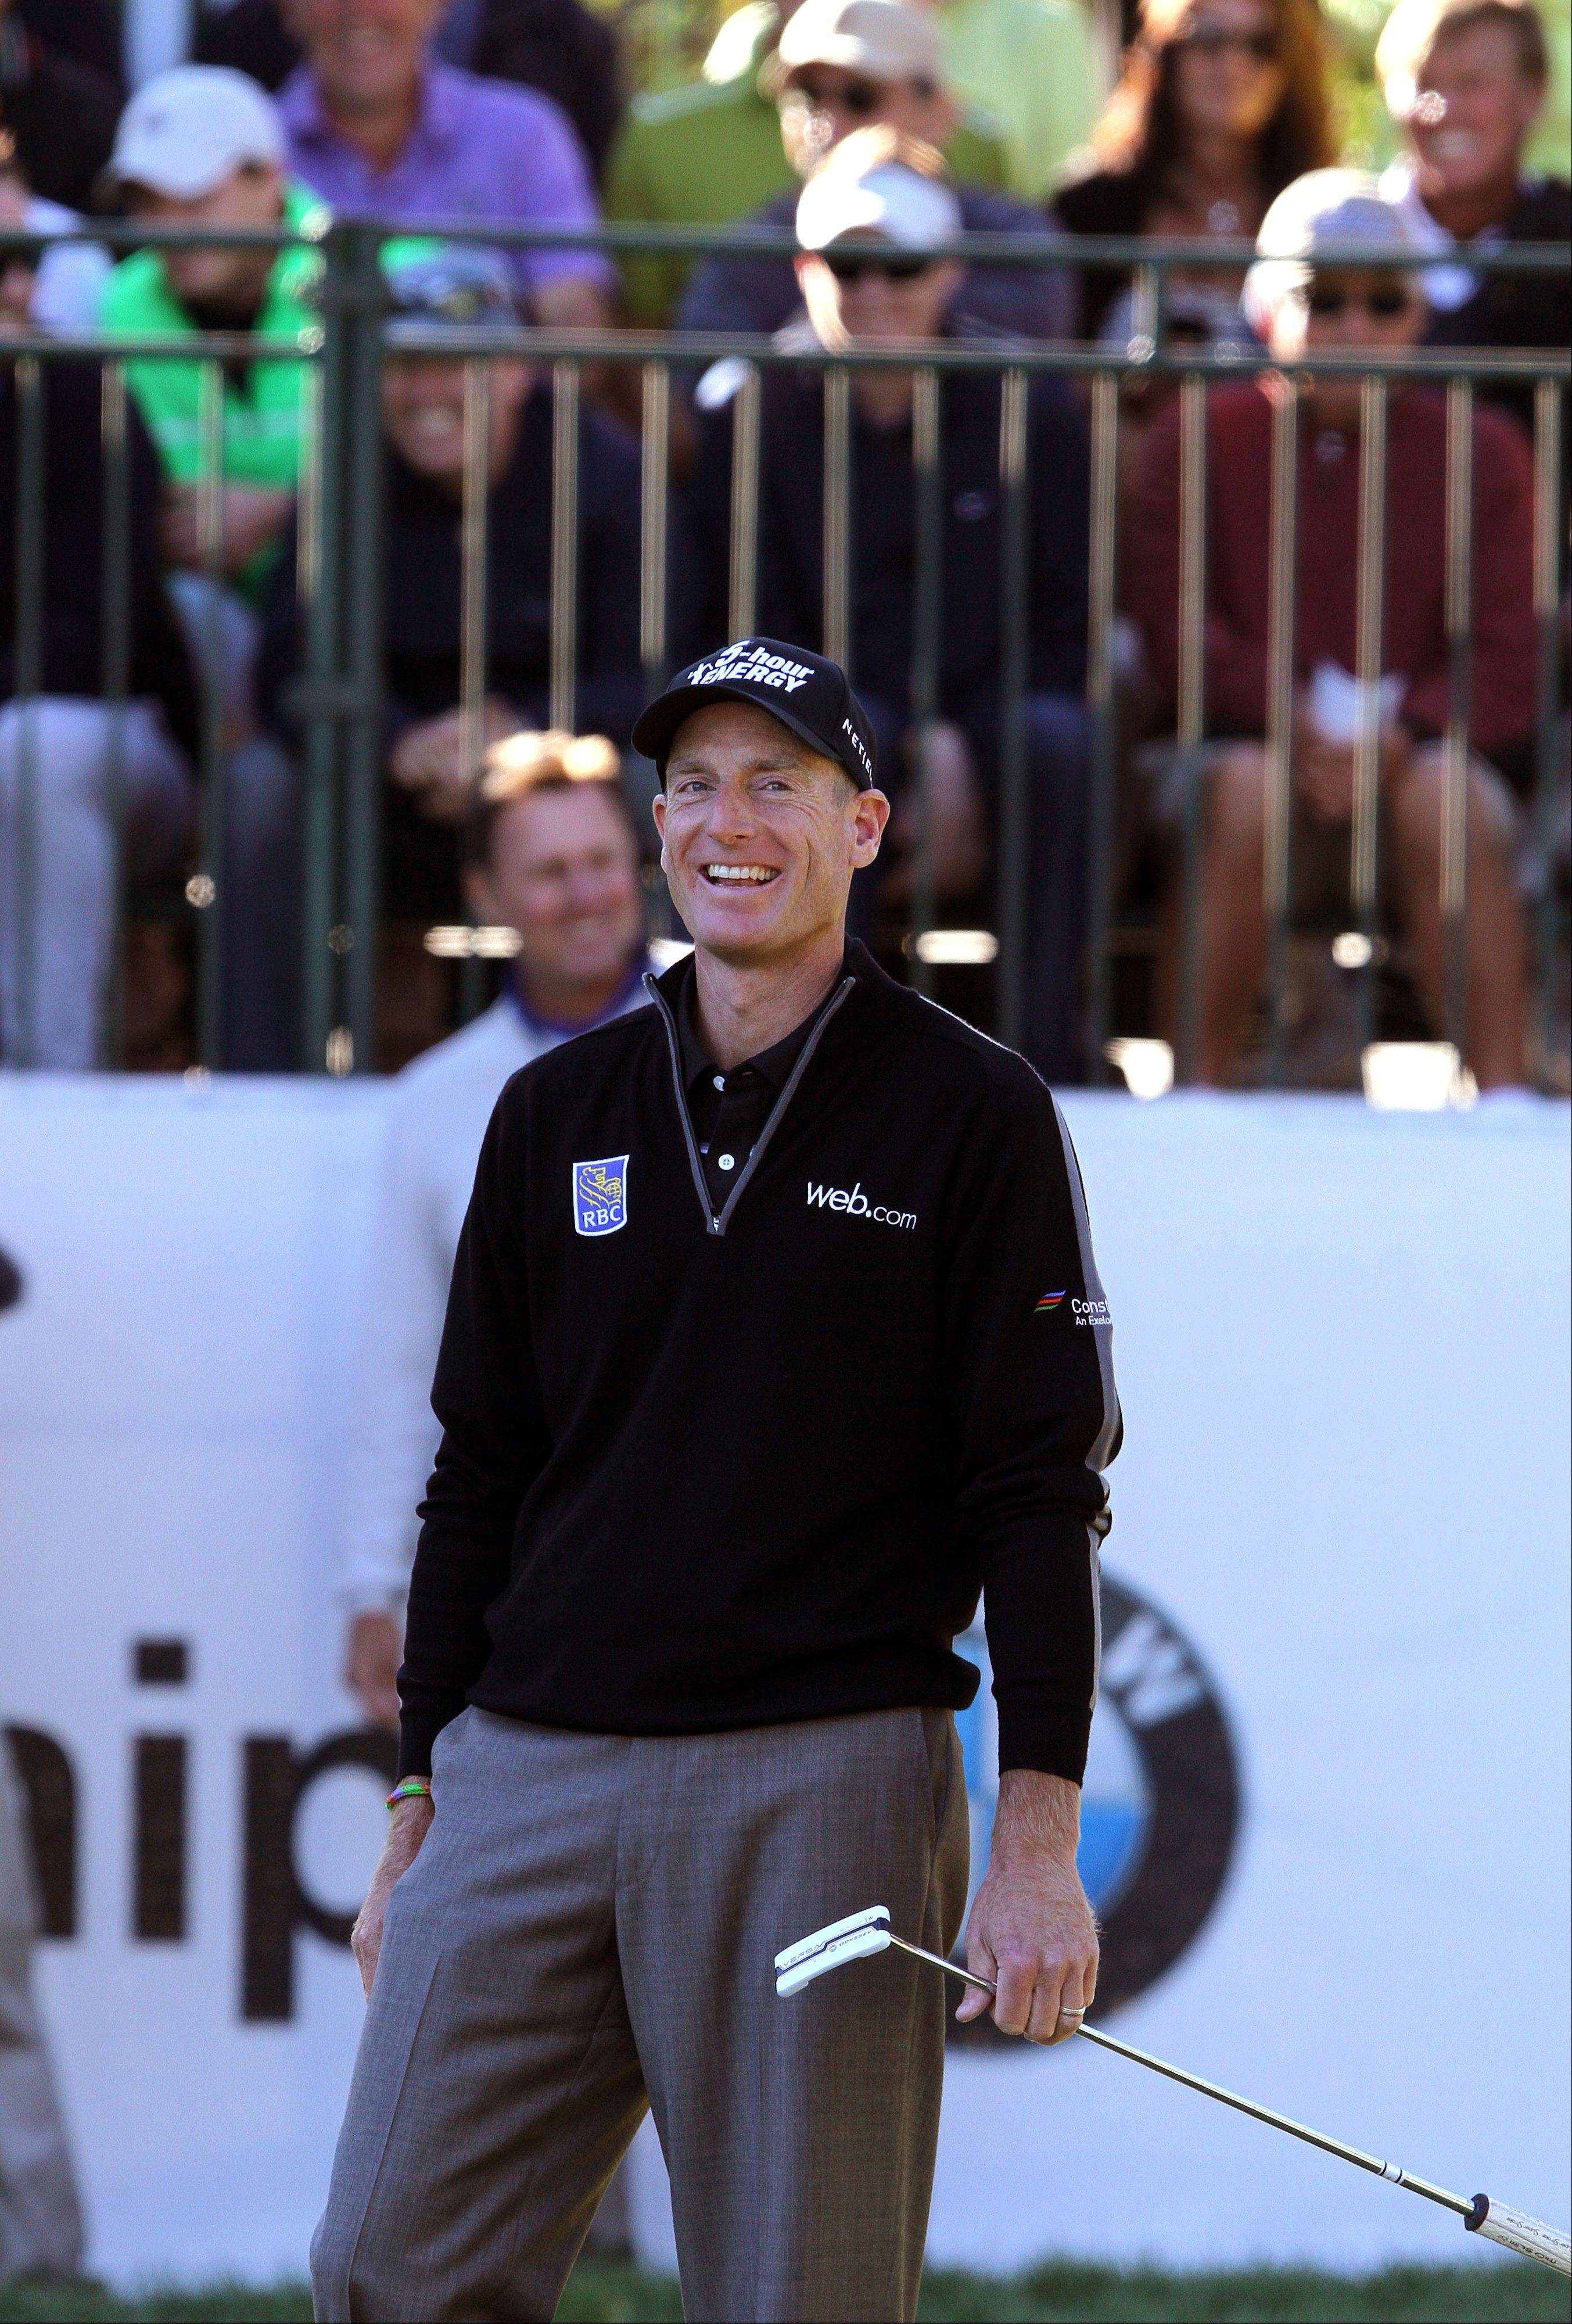 Jim Furyk smiles on the 9th hole after a fan shouted encouragement.